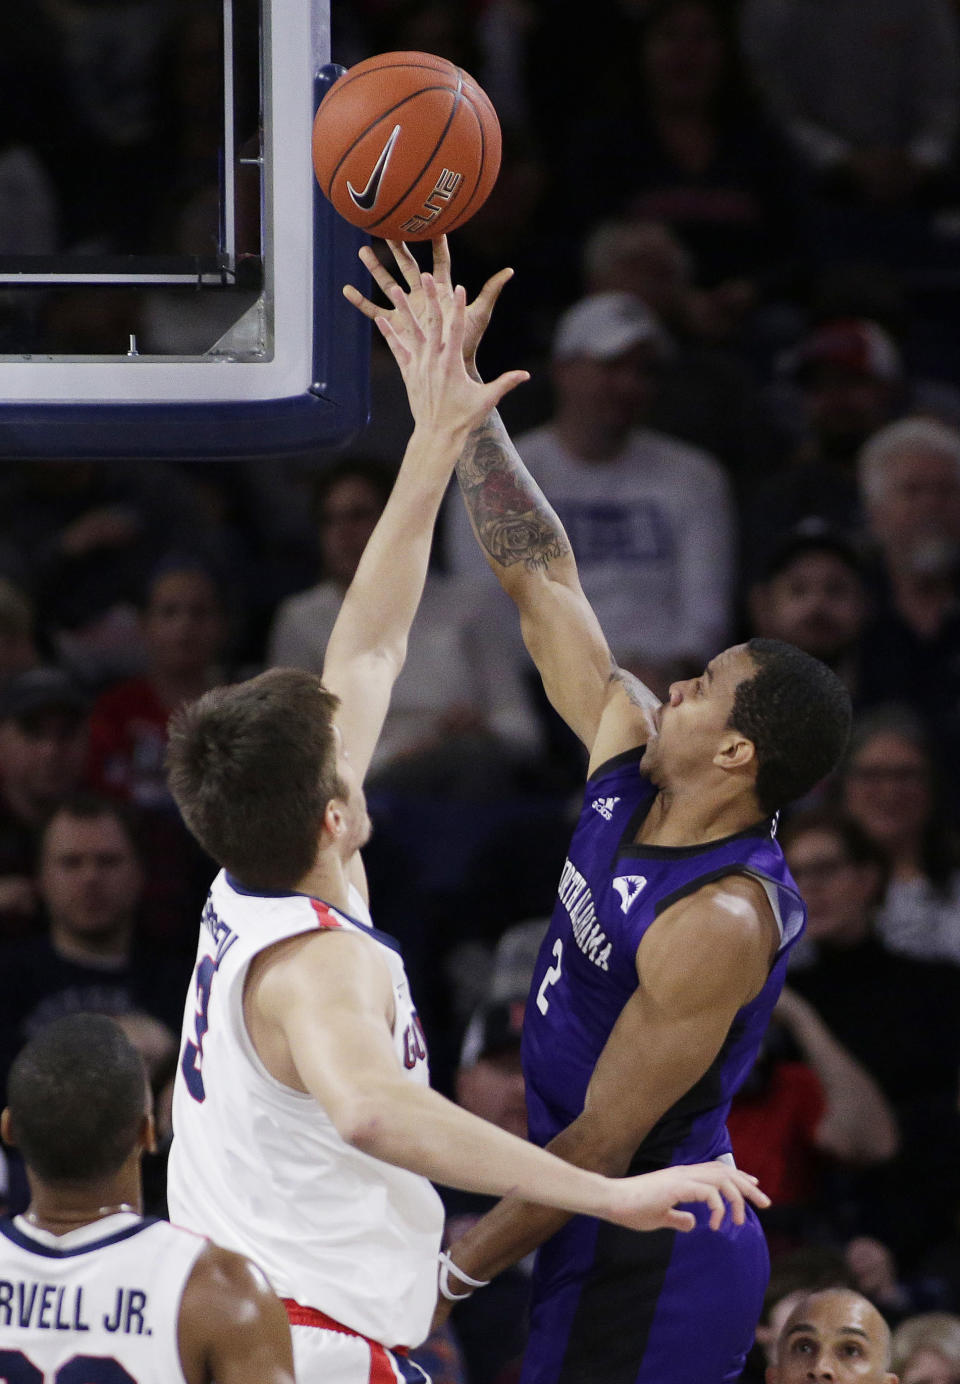 North Alabama guard Christian Agnew (2) shoots while defended by Gonzaga forward Filip Petrusev during the first half of an NCAA college basketball game in Spokane, Wash., Friday, Dec. 28, 2018. (AP Photo/Young Kwak)